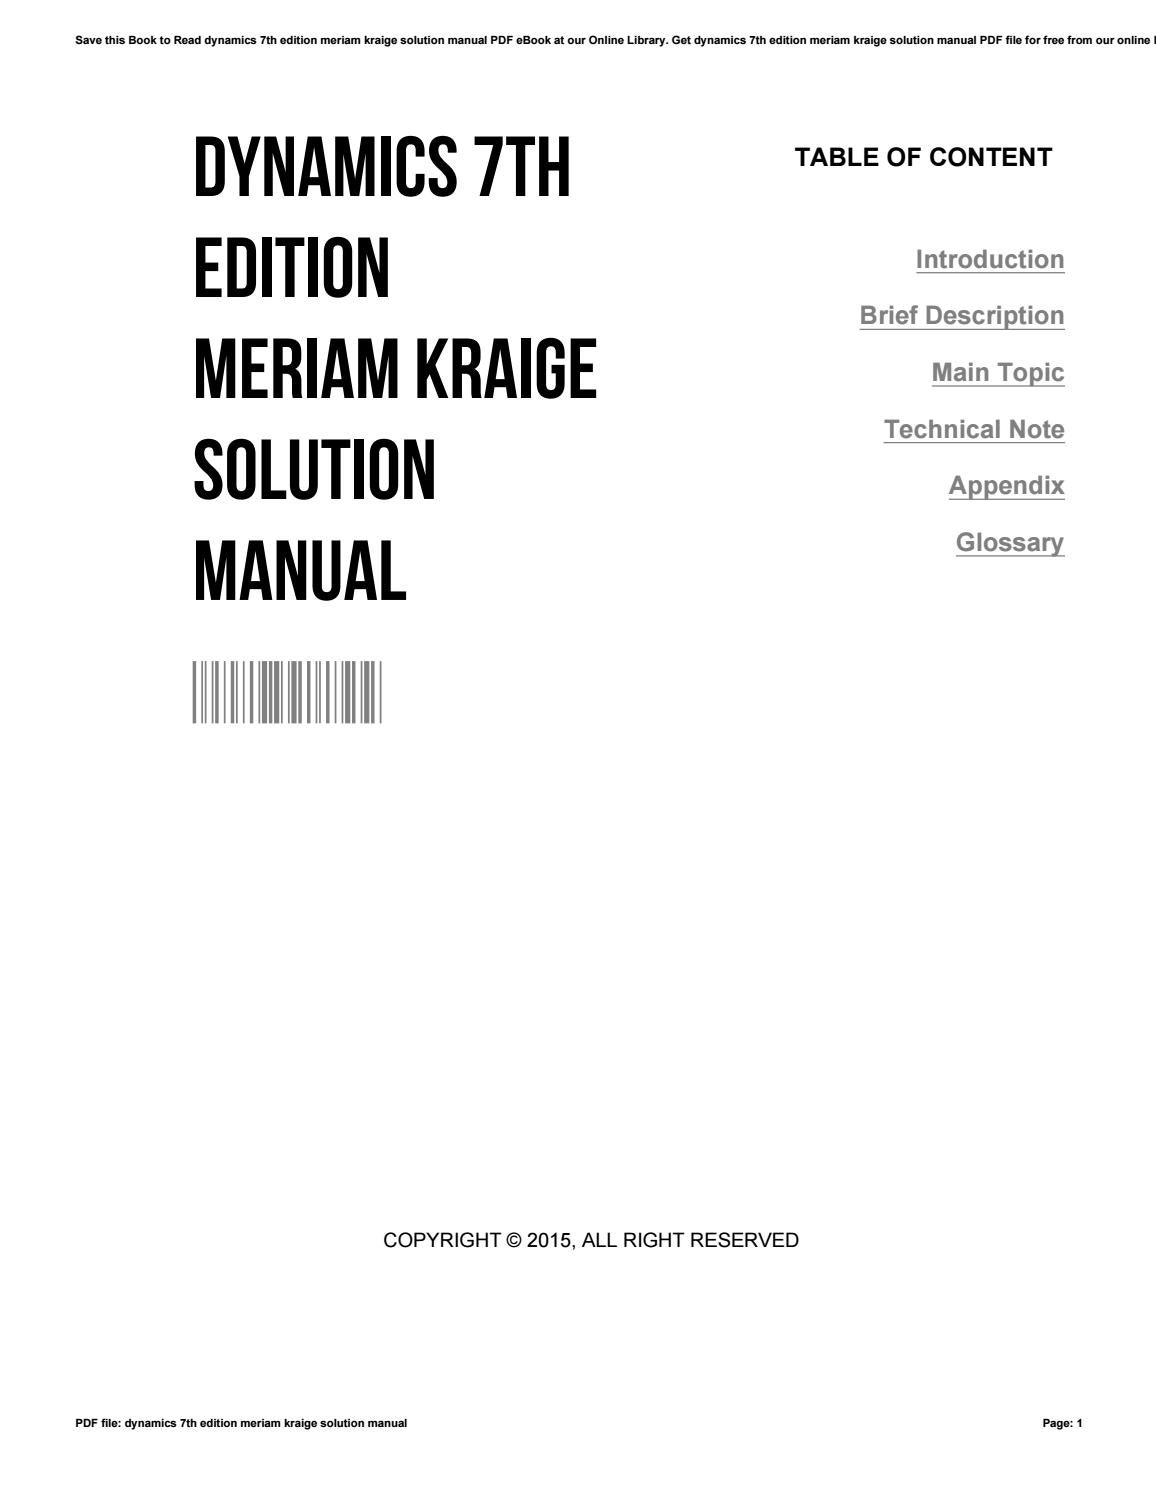 Engineering mechanics dynamics 7th edition solution manual pdf 28 engineering mechanics dynamics 7th edition solution manual pdf engineering mechanics dynamics 7th edition solution manual fandeluxe Image collections